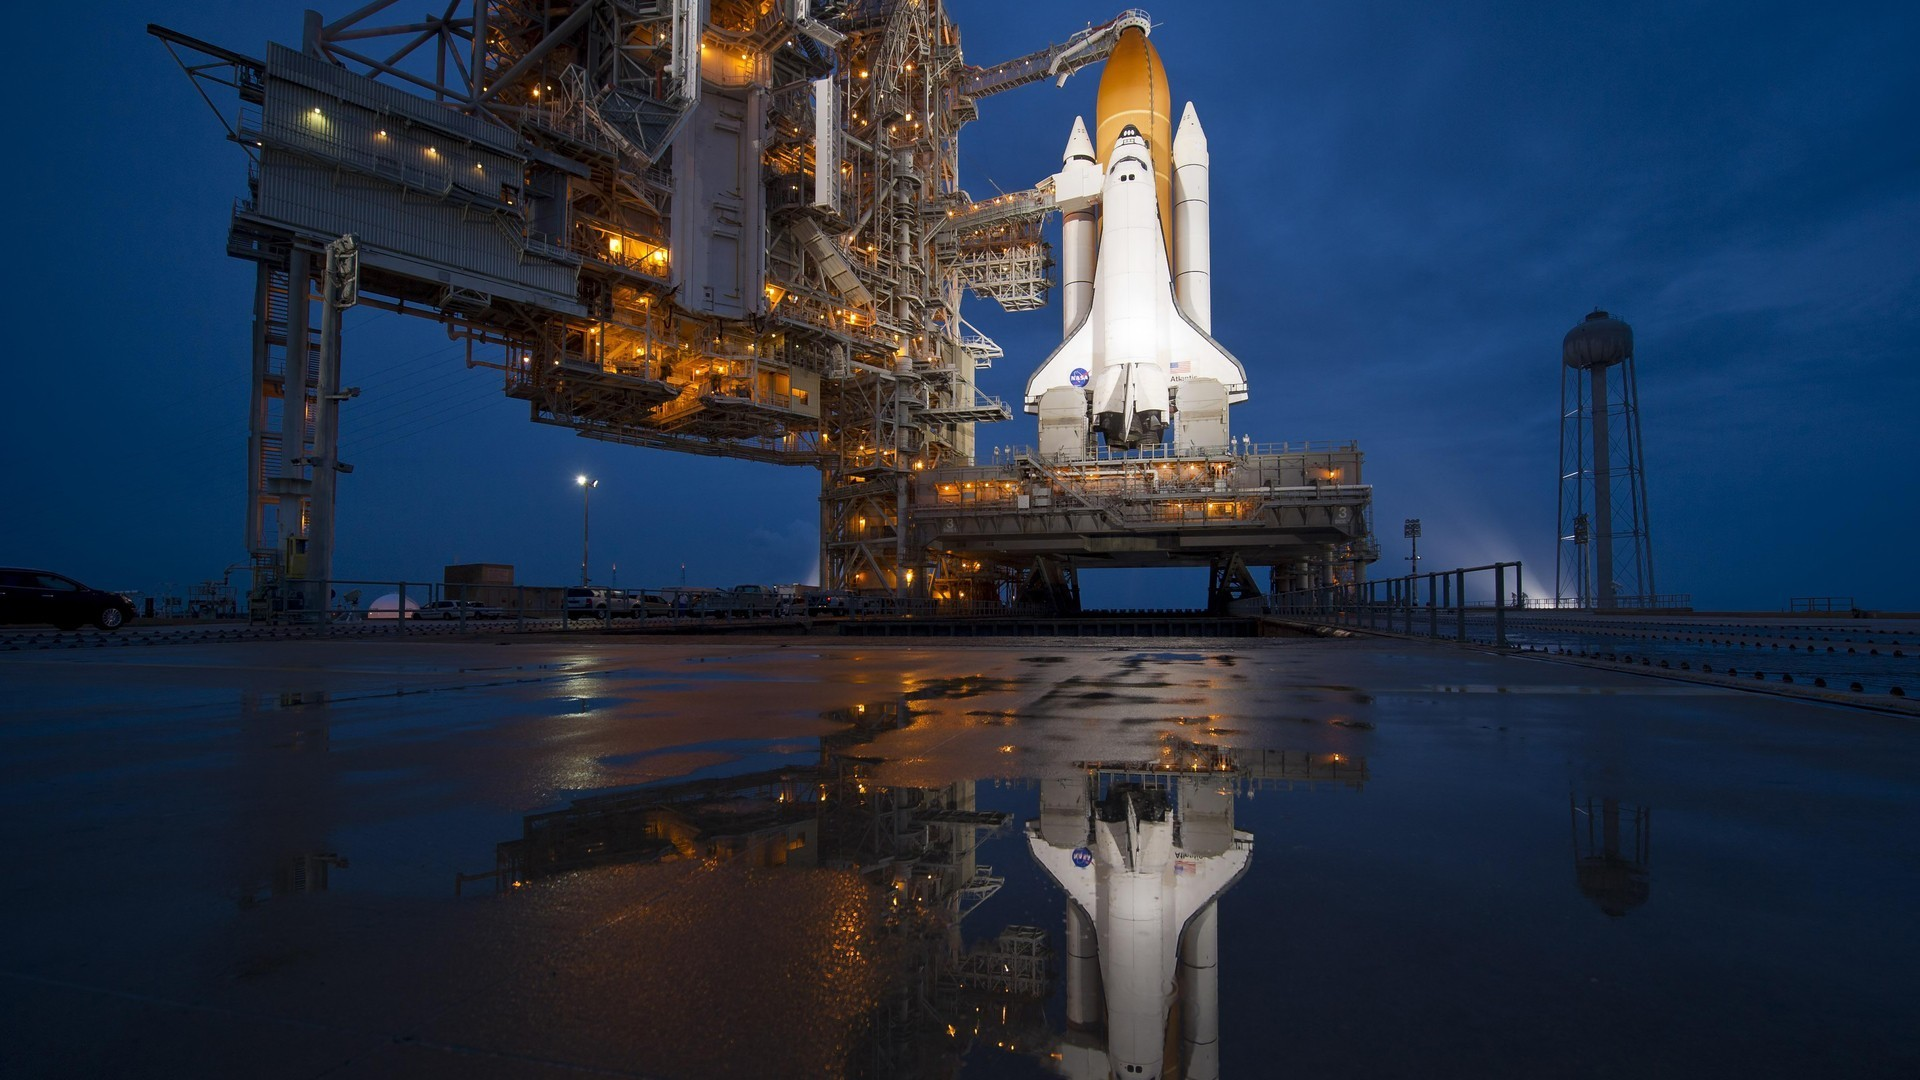 Space shuttle nasa hd wallpaper hintergrund 1920x1080 - Nasa space wallpaper 1920x1080 ...